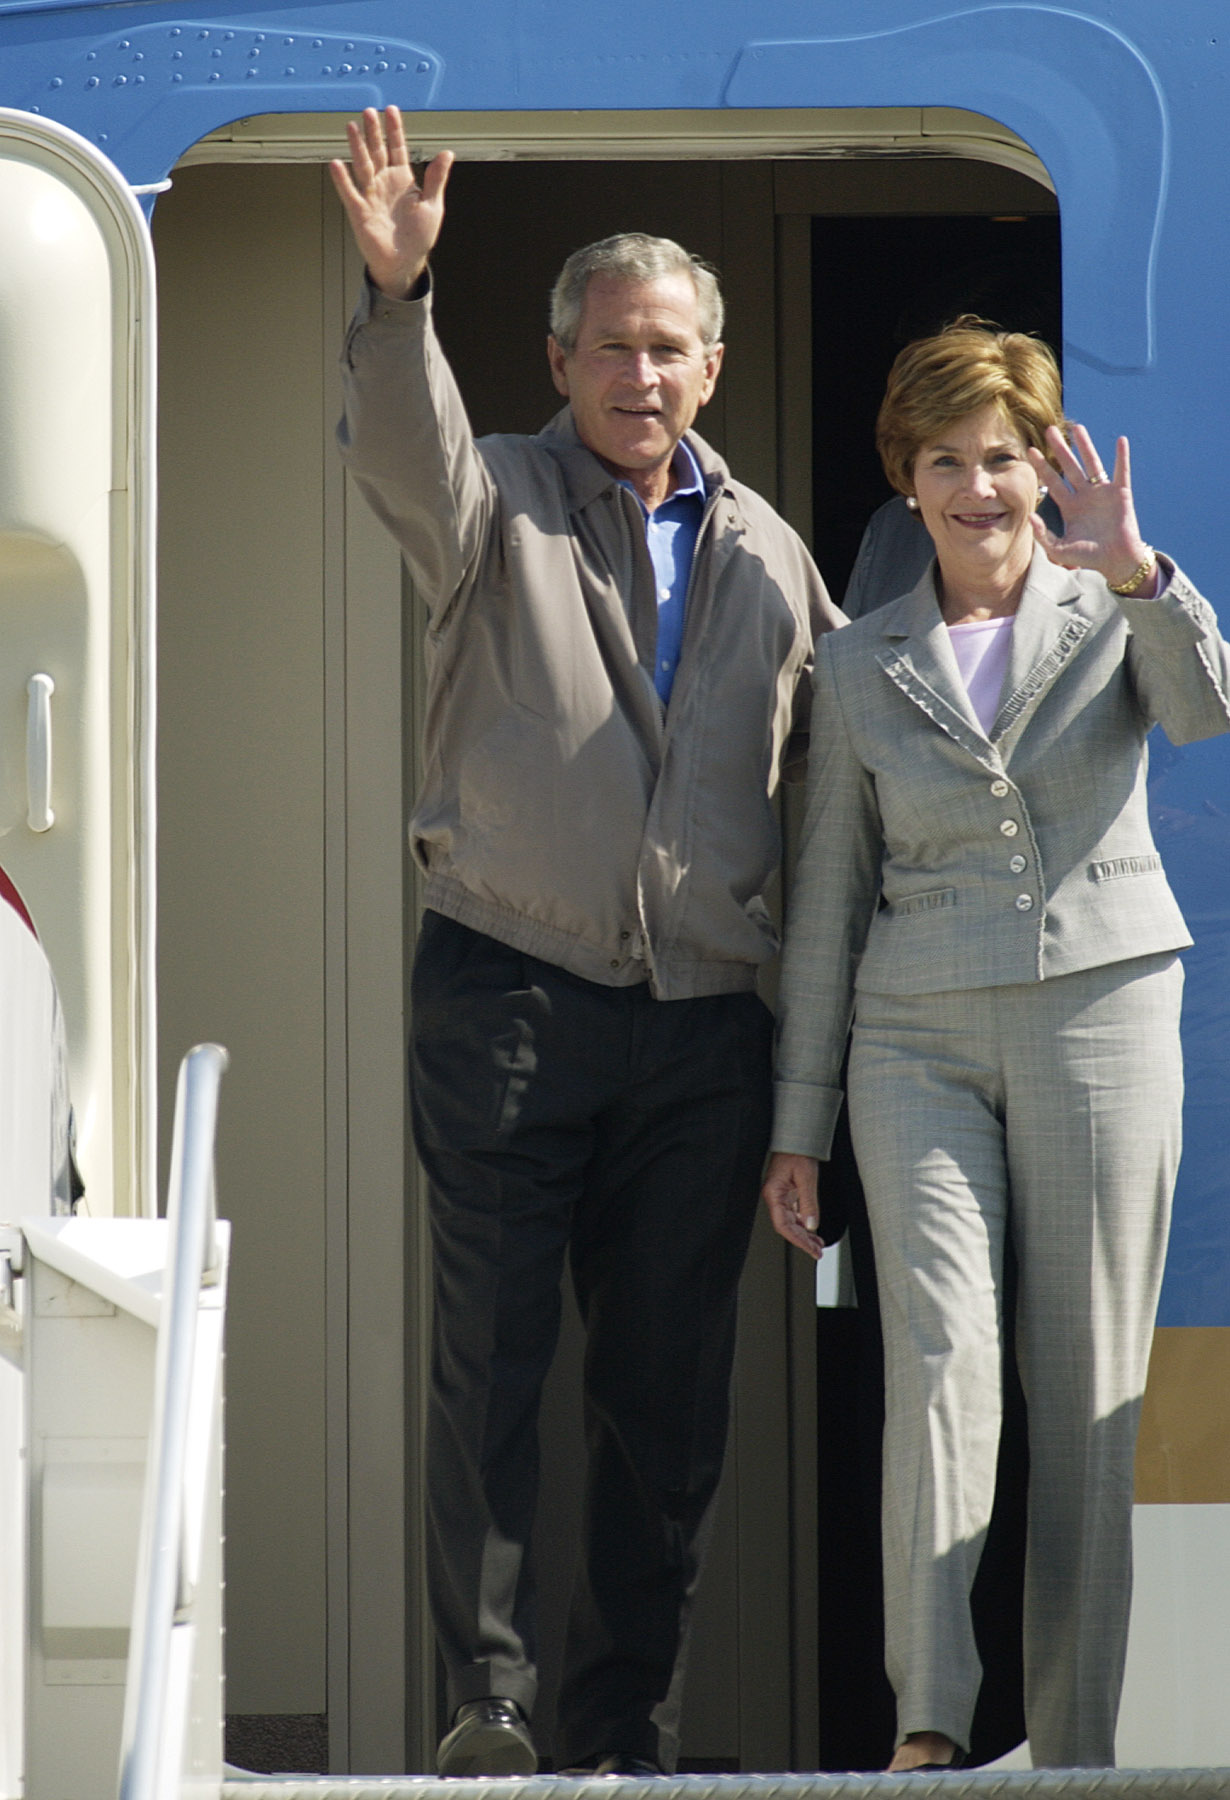 <div class='meta'><div class='origin-logo' data-origin='none'></div><span class='caption-text' data-credit='AP Photo/John Klicker'>President Bush and First Lady Laura Bush and wave to onlookers and supporters, Friday, Aug. 13, 2004, as they step off of Air Force One in Portland, Ore.</span></div>